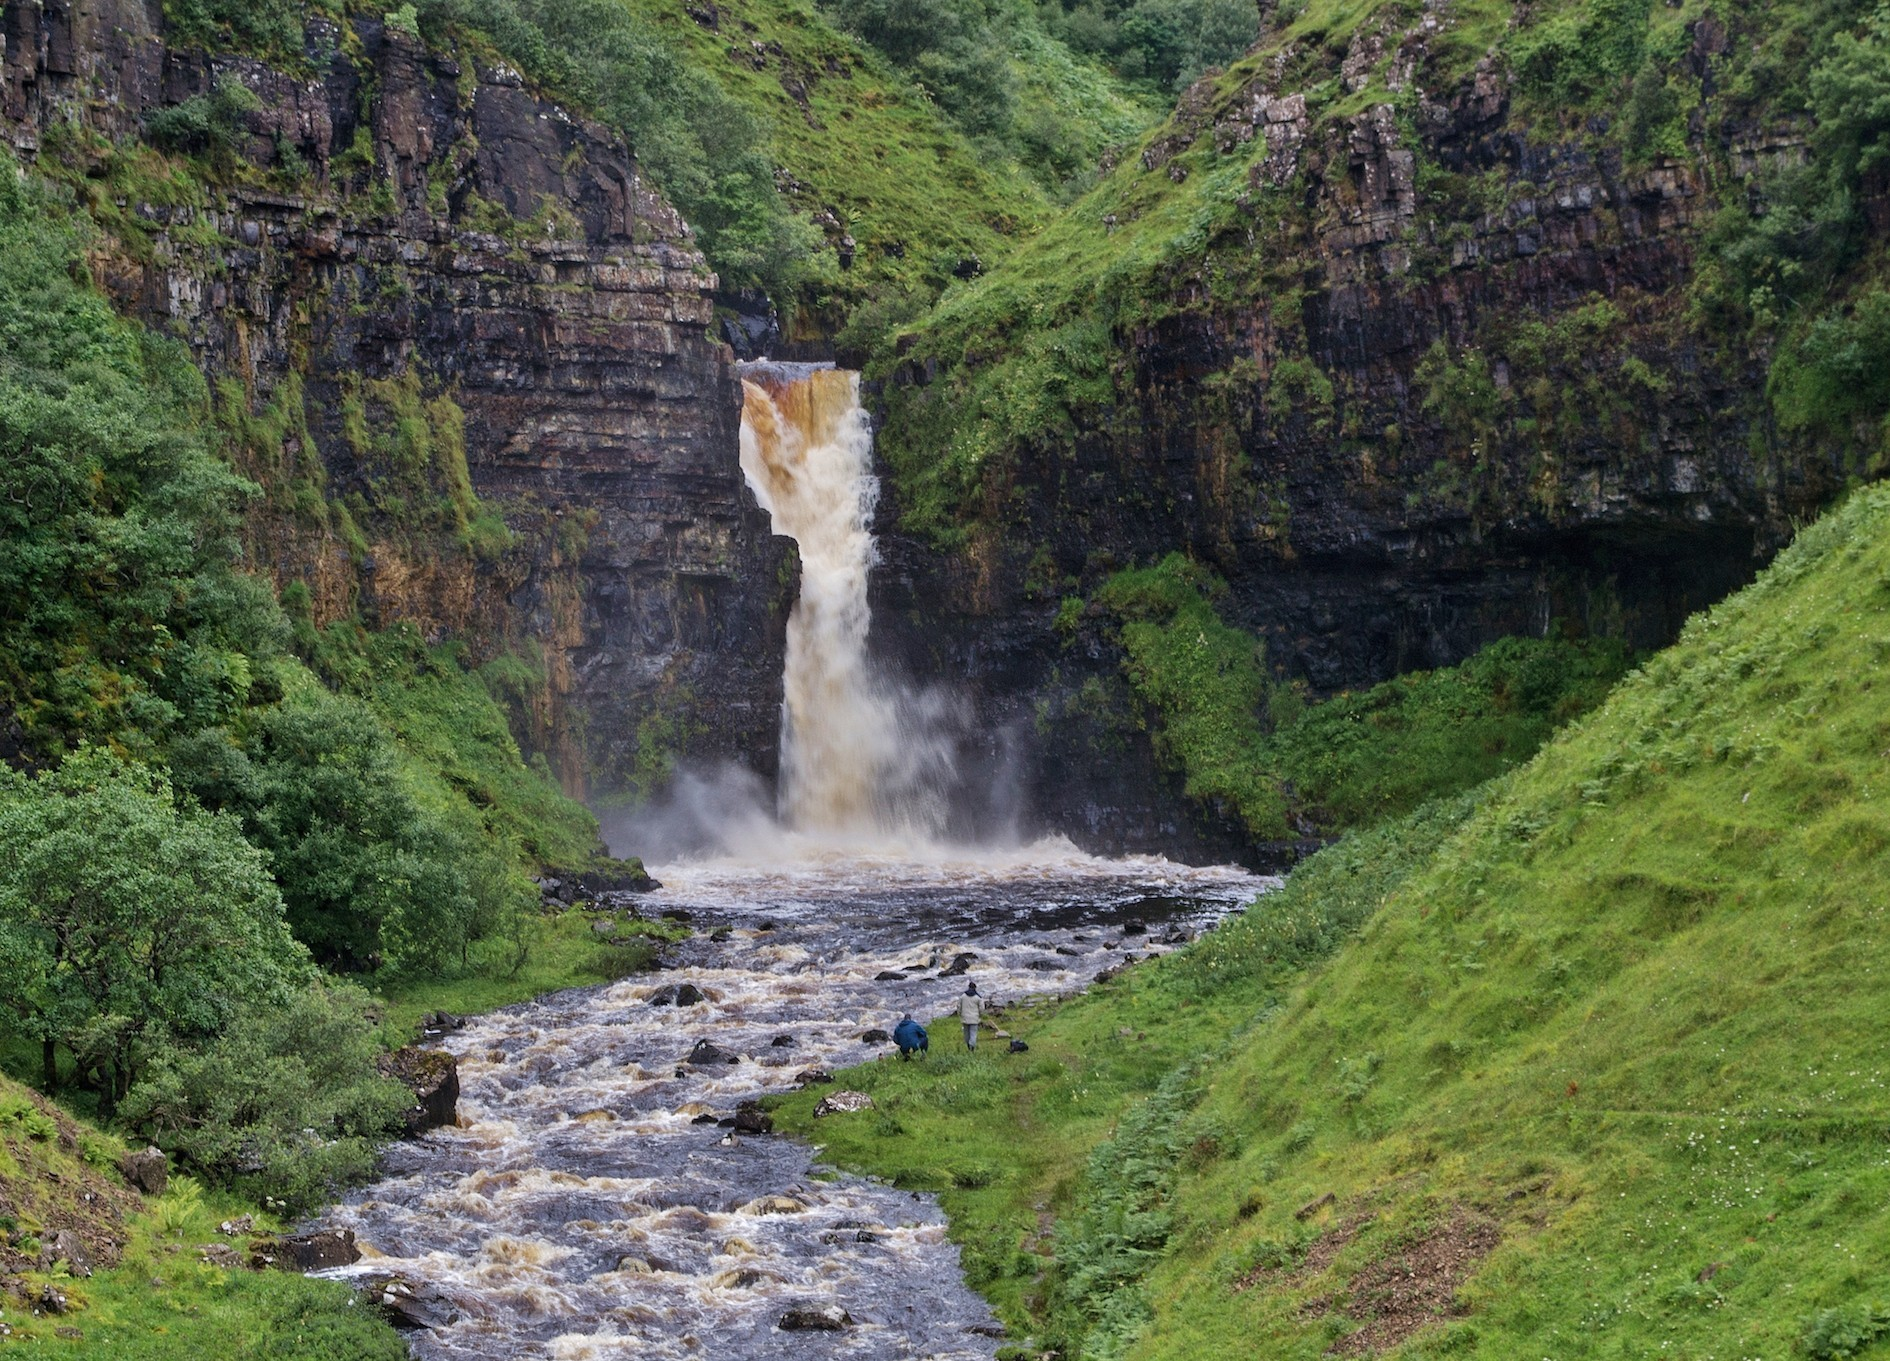 The construction of a viewing platform at an iconic Skye waterfall featured in films has moved a step forward.